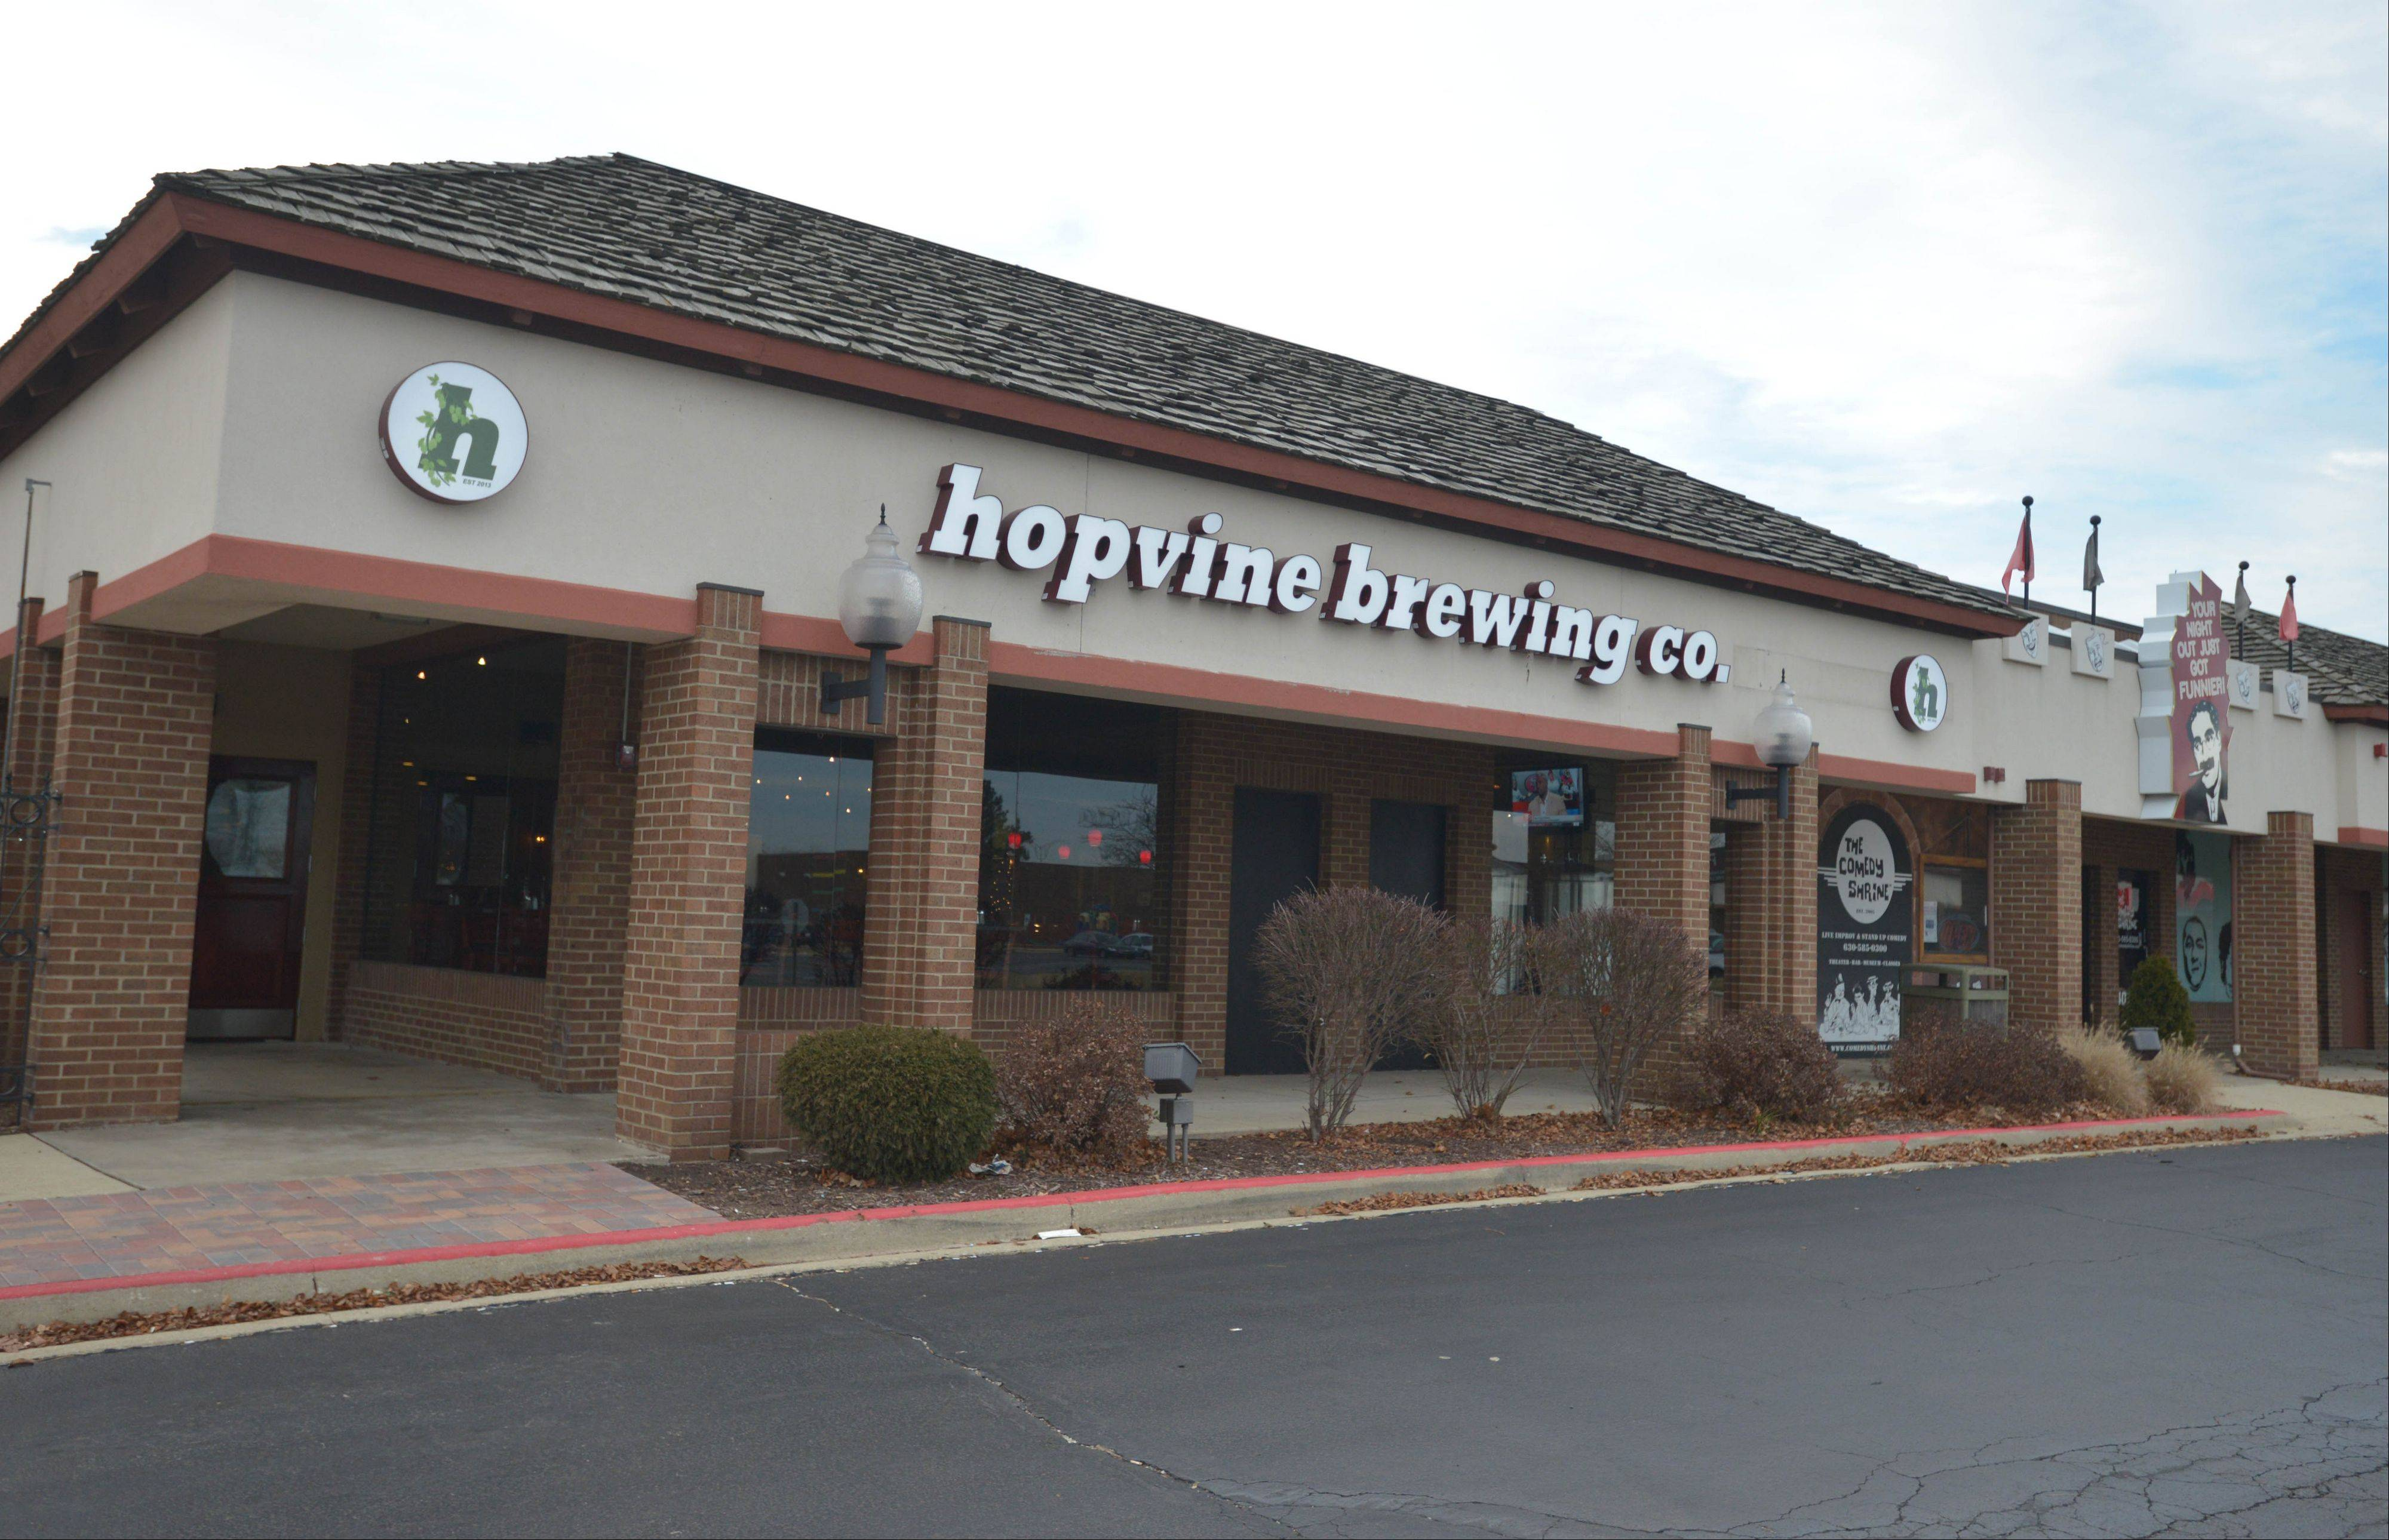 Hopvine Brewing Co. opened up earlier this fall just outside Westfield Mall in Aurora.